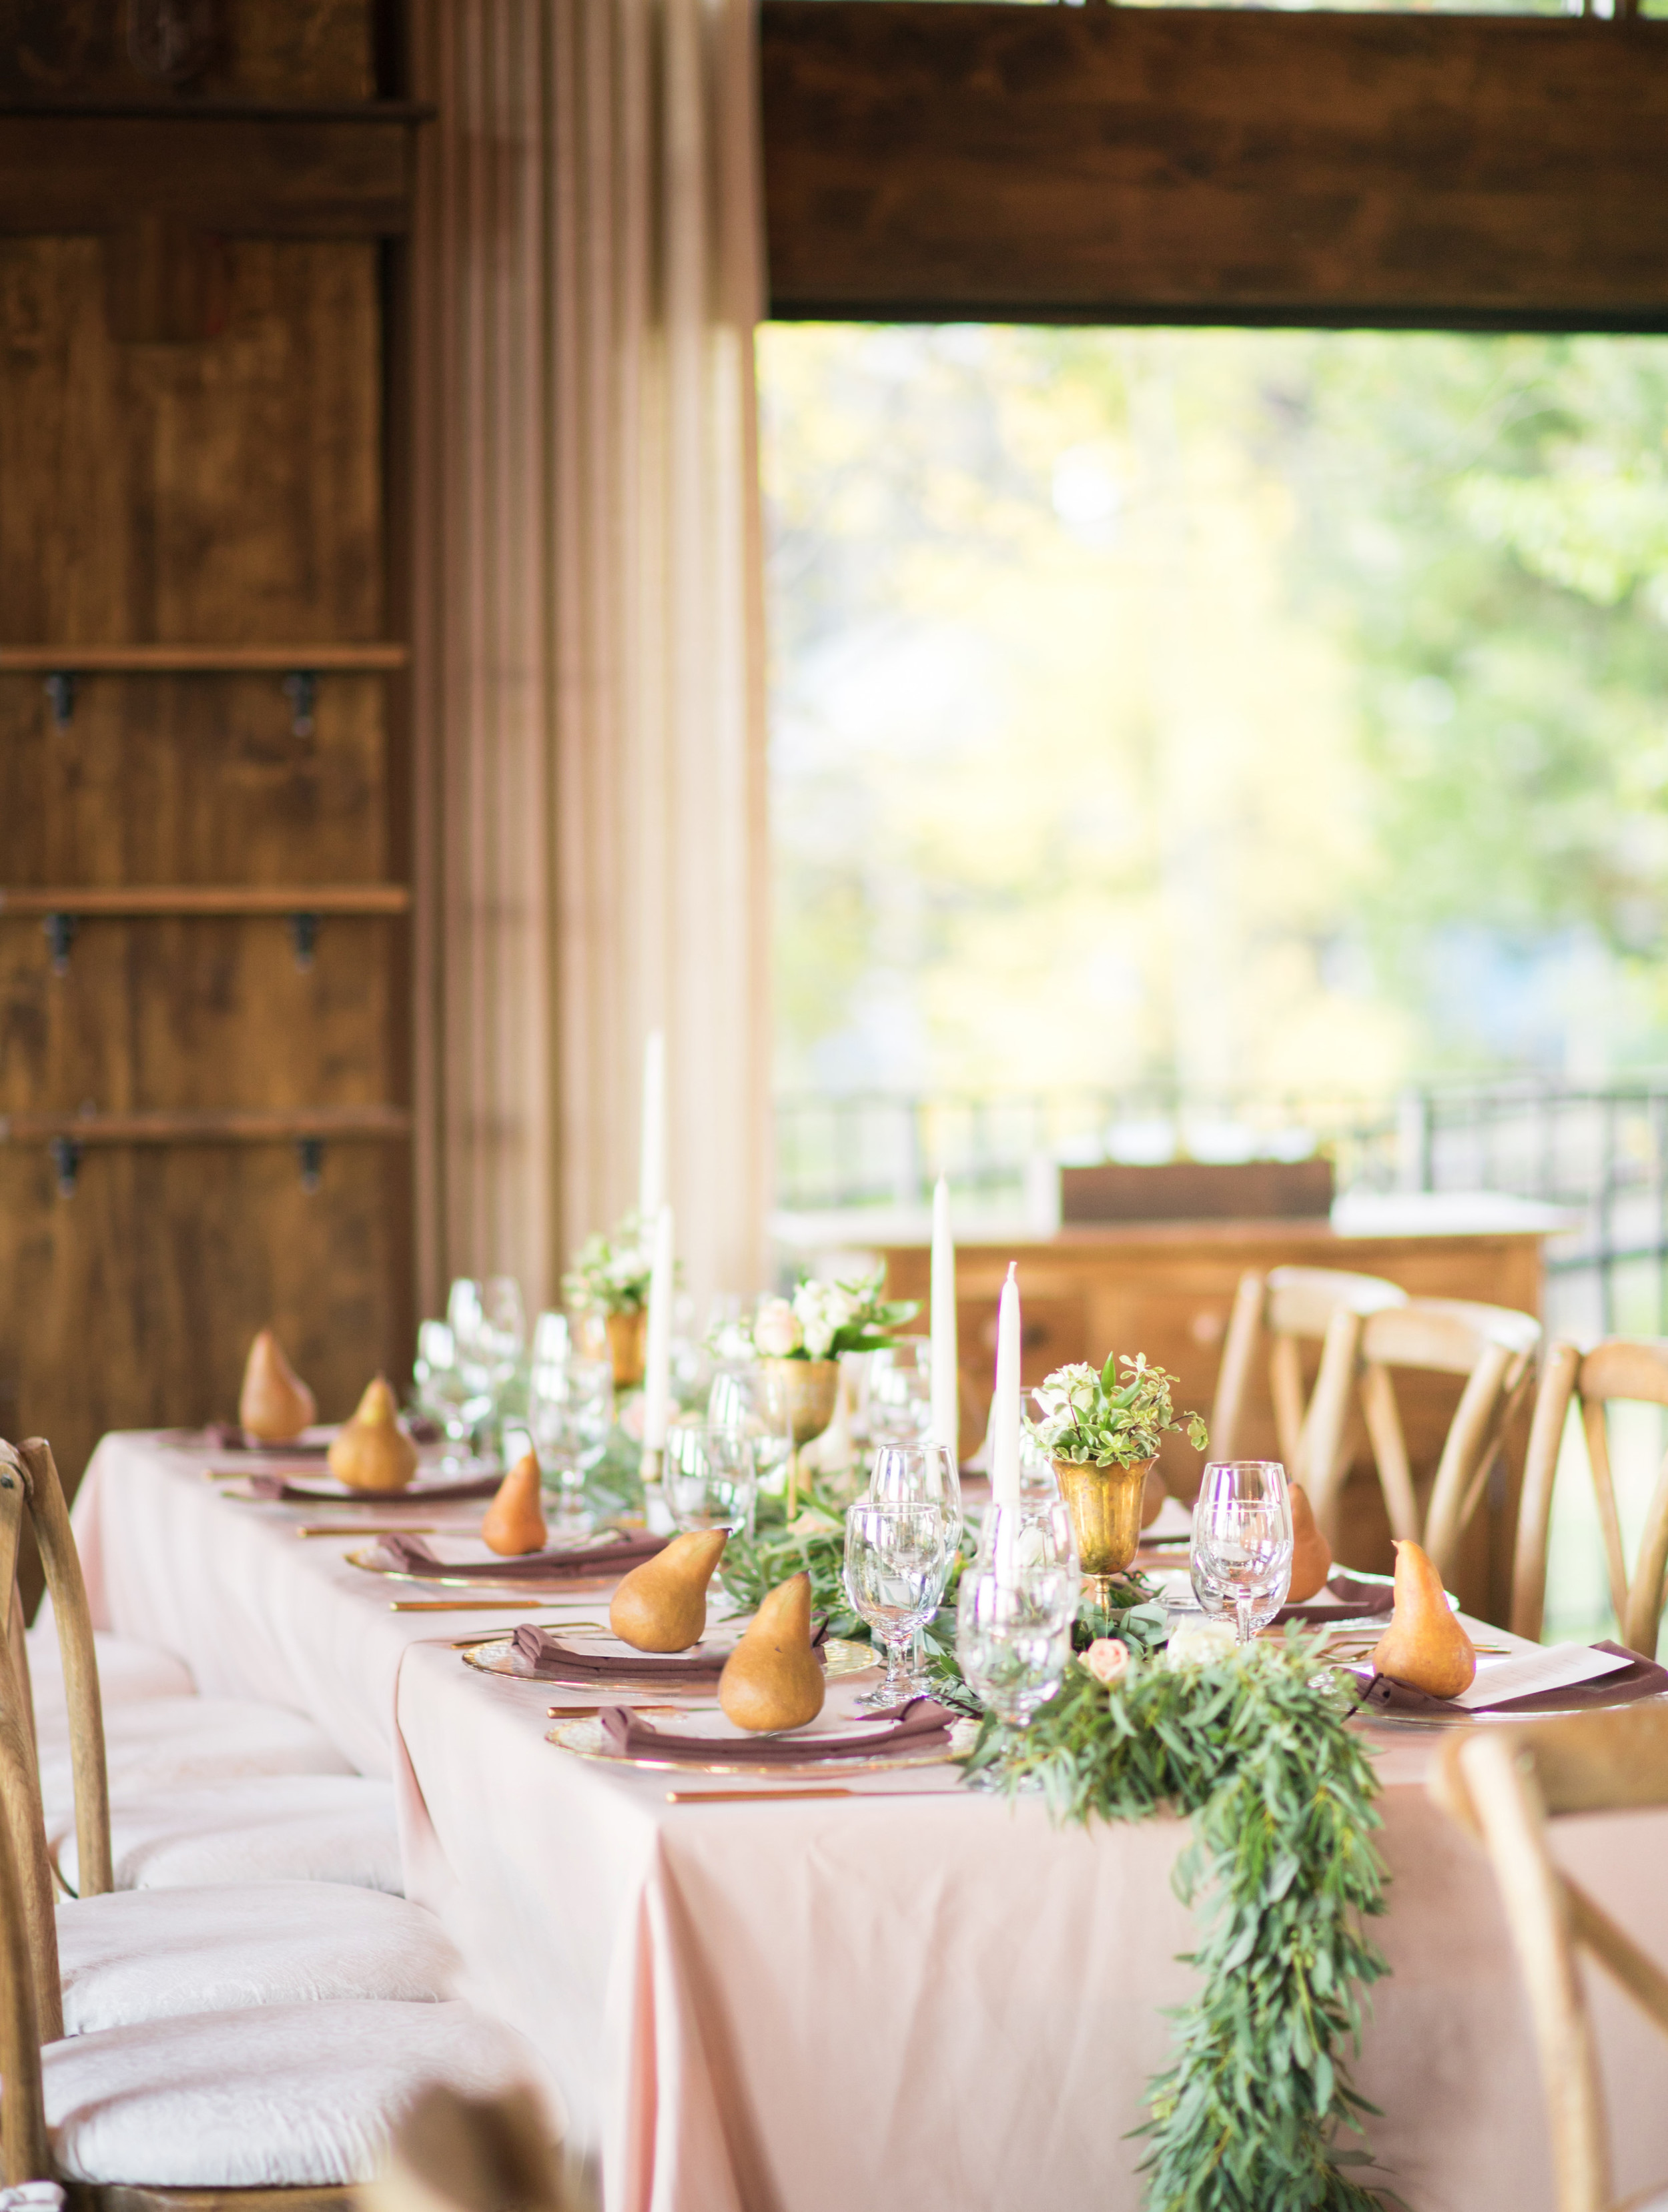 Lake Tahoe wedding by A Savvy Event [David Newkirk Photography]